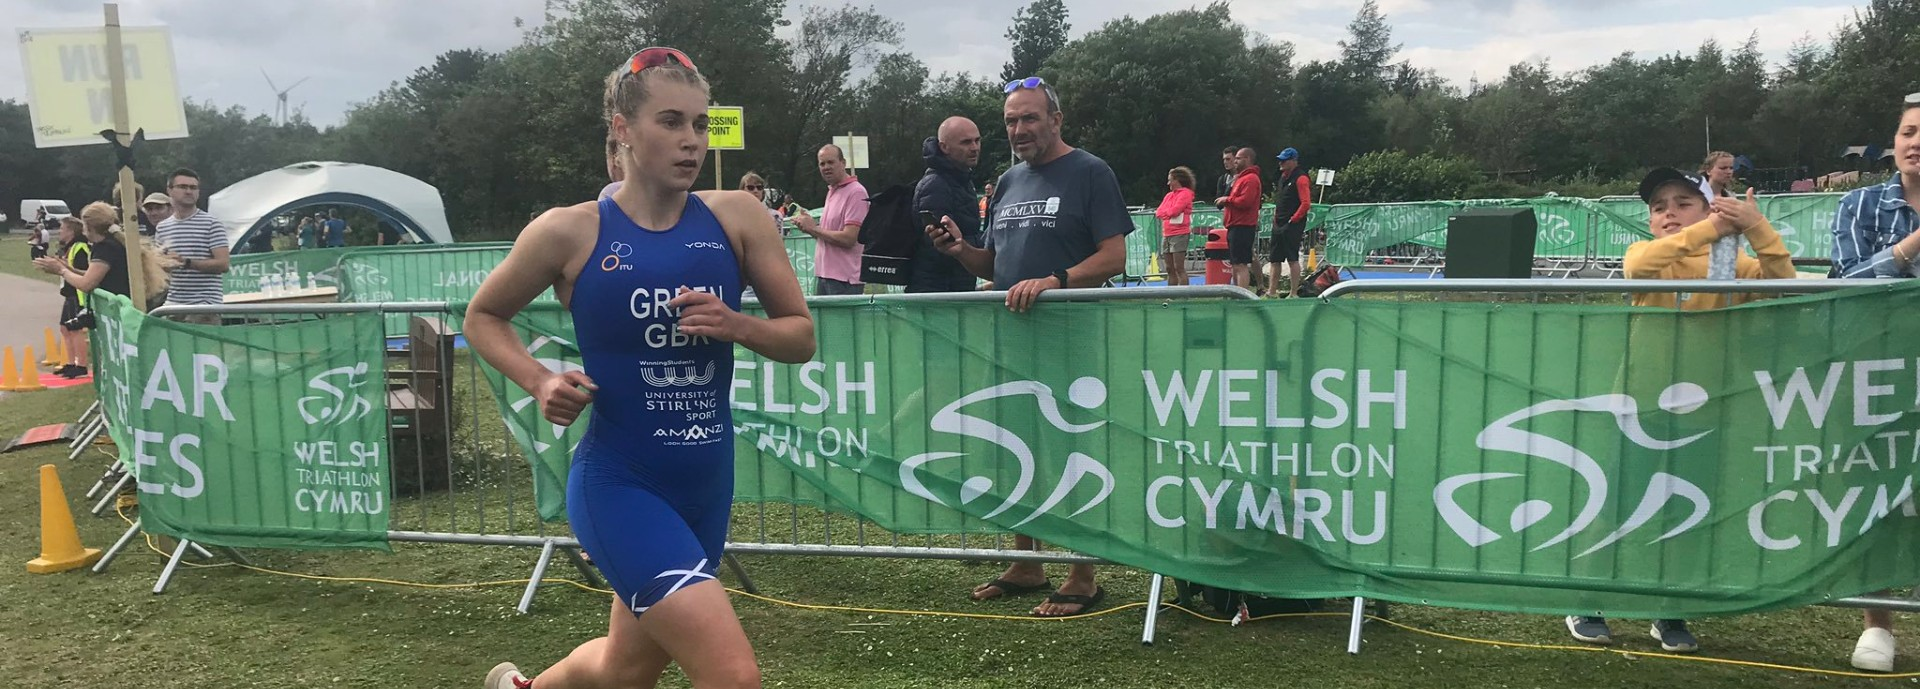 Sophia Green running at the World Junior Championships qualifying event in Wales